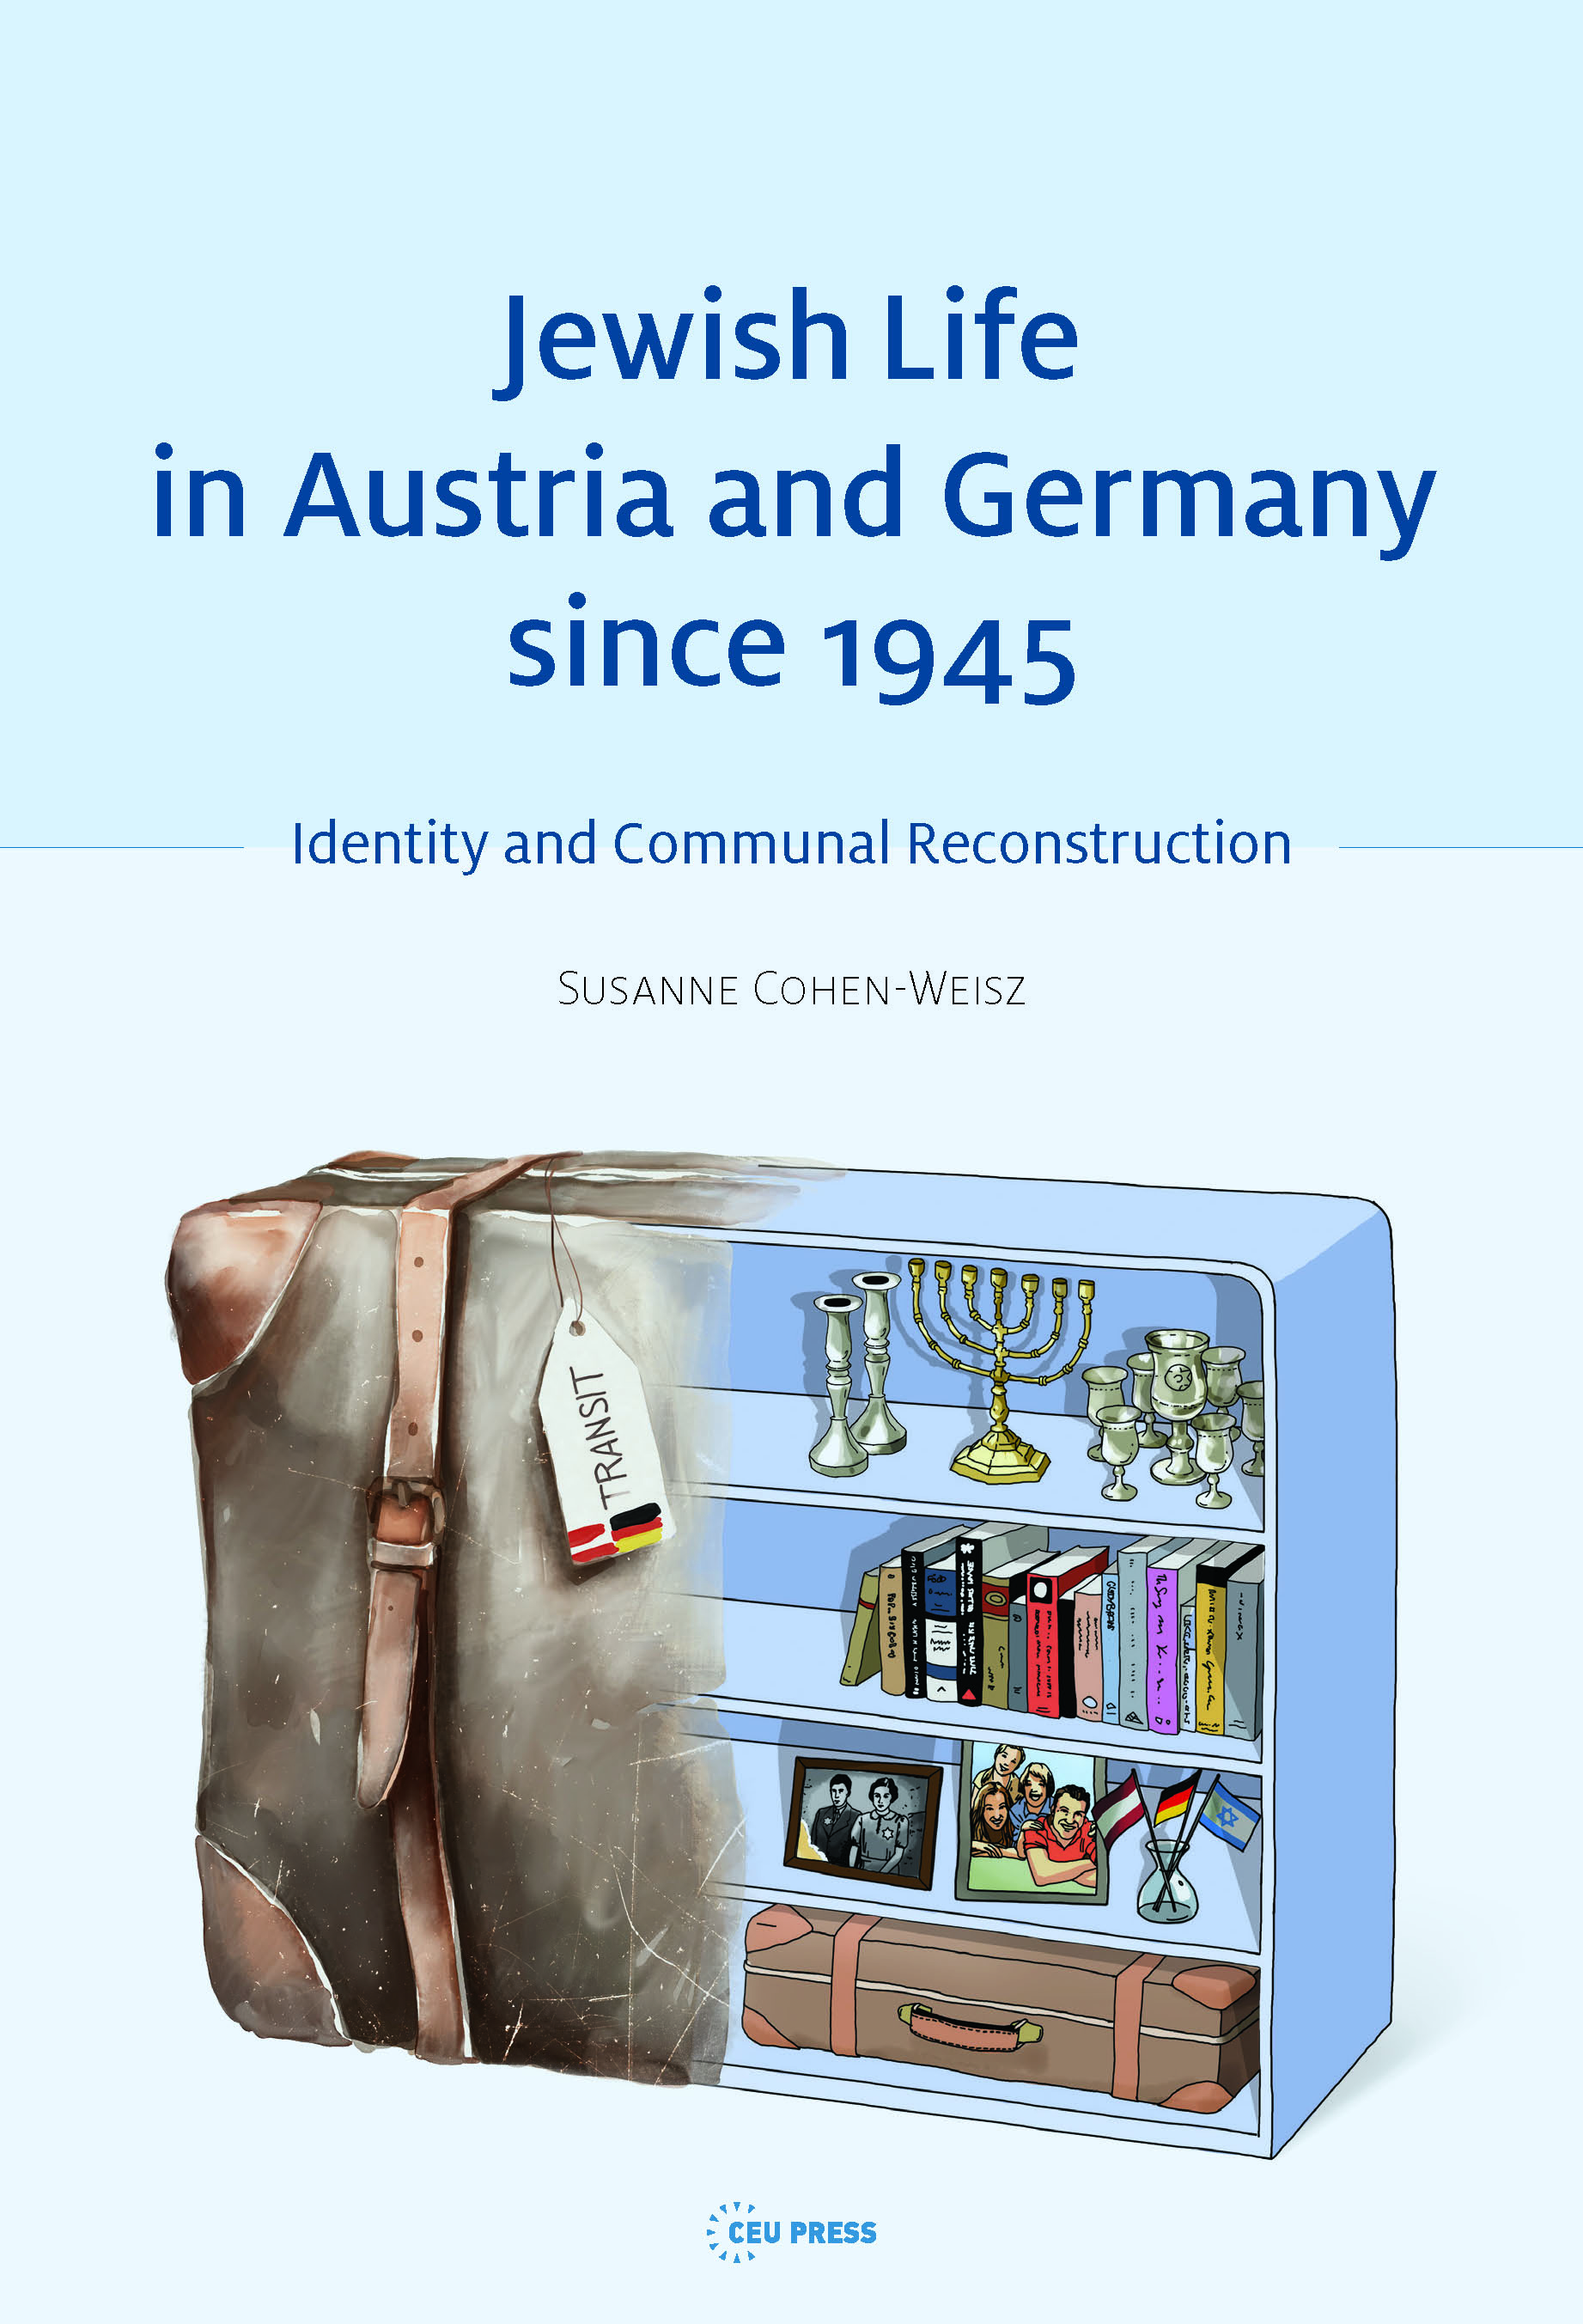 Jewish Life in Austria and Germany since 1945